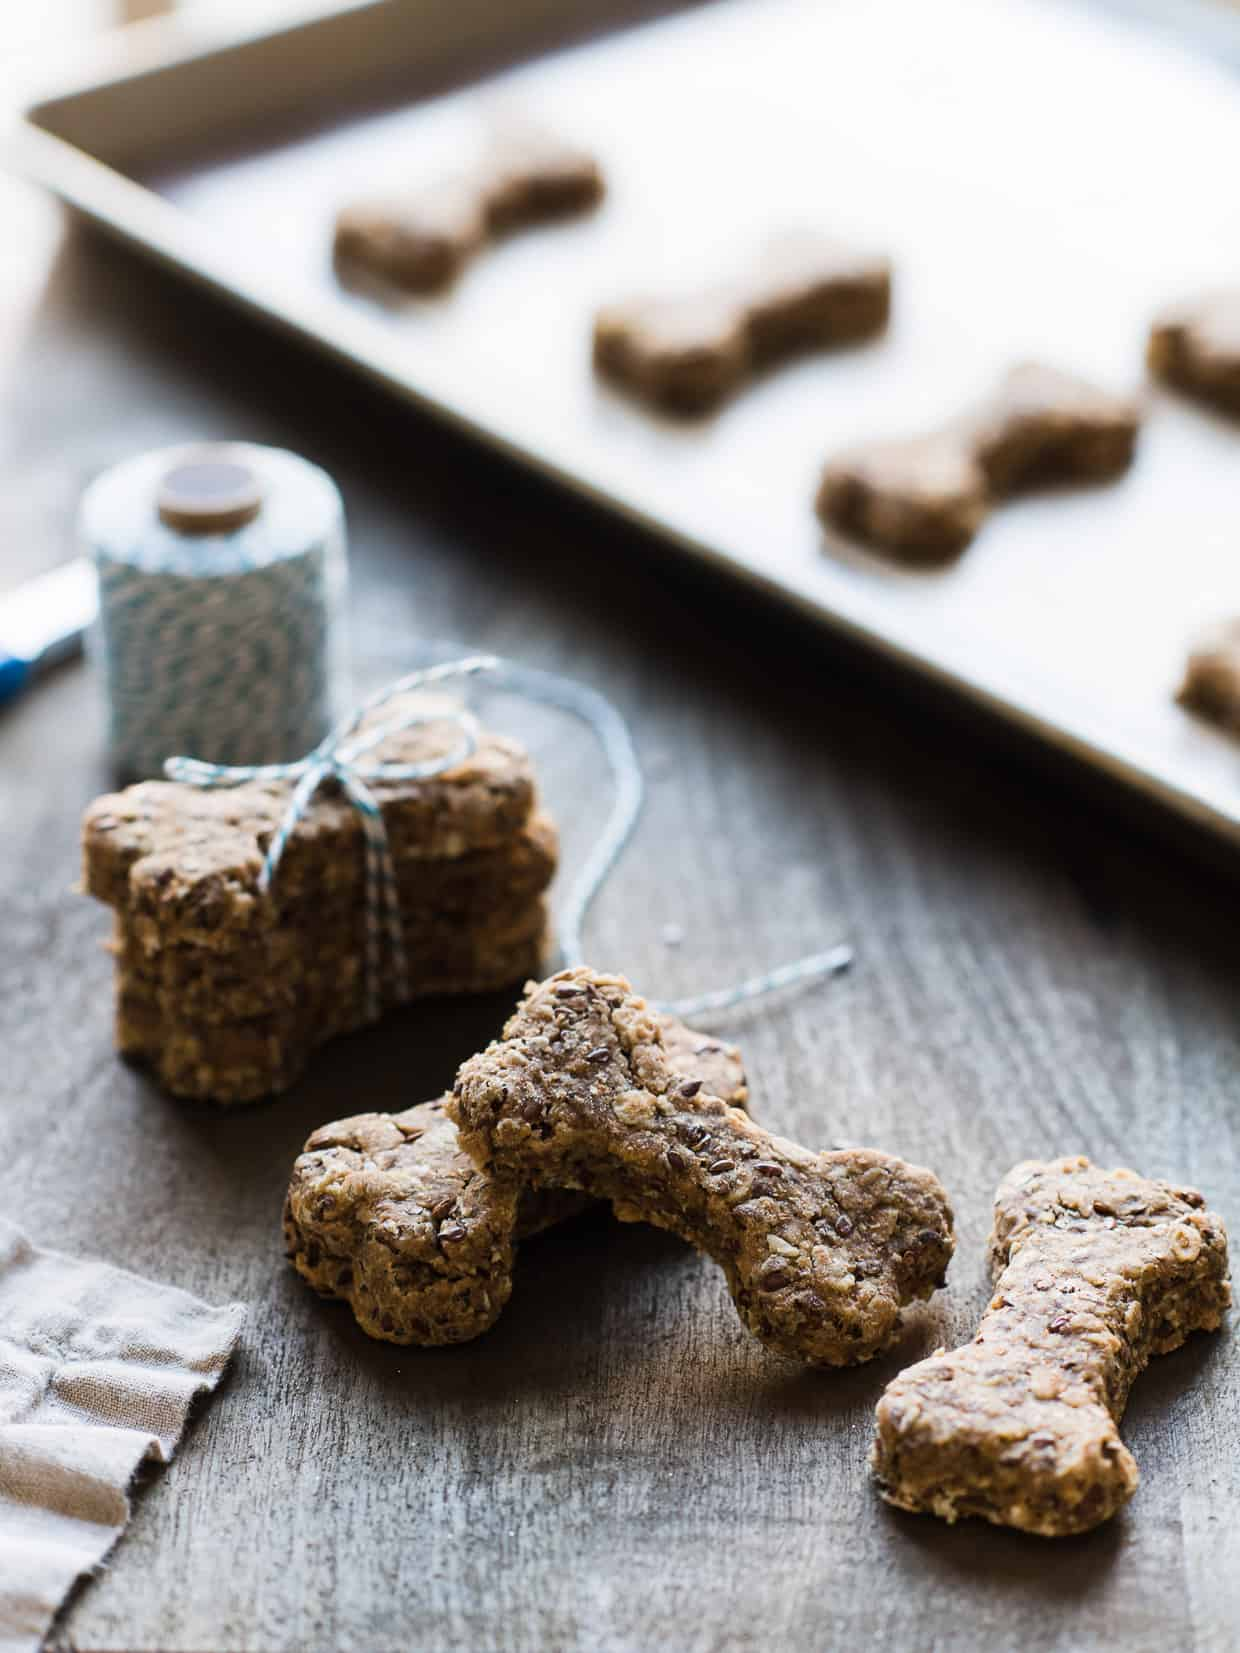 Homemade dog biscuits made with peanut butter, flaxseed and whole wheat flour on a baking sheet.